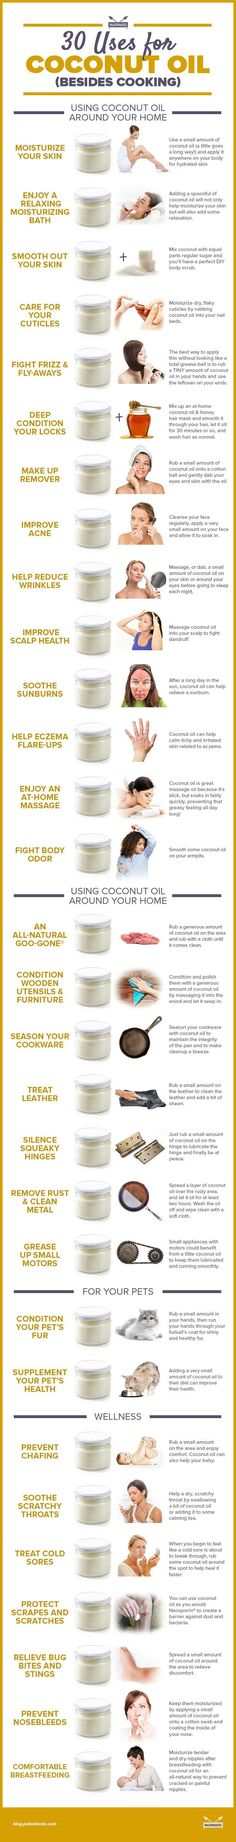 30 Uses for Coconut